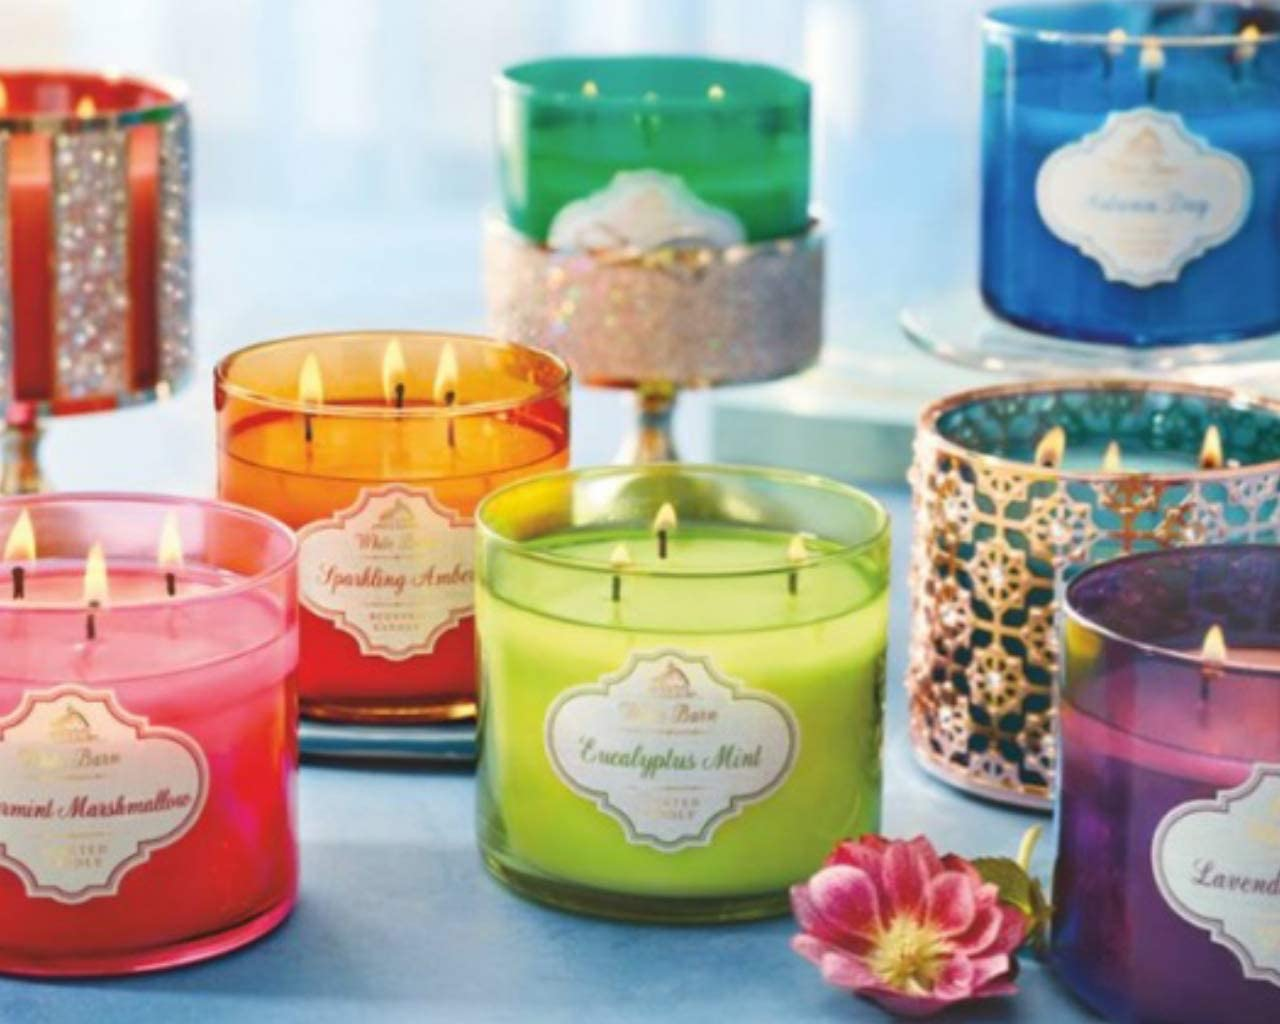 1 Bath /& Body Works WINTER DAISY 3-Wick Candle Large